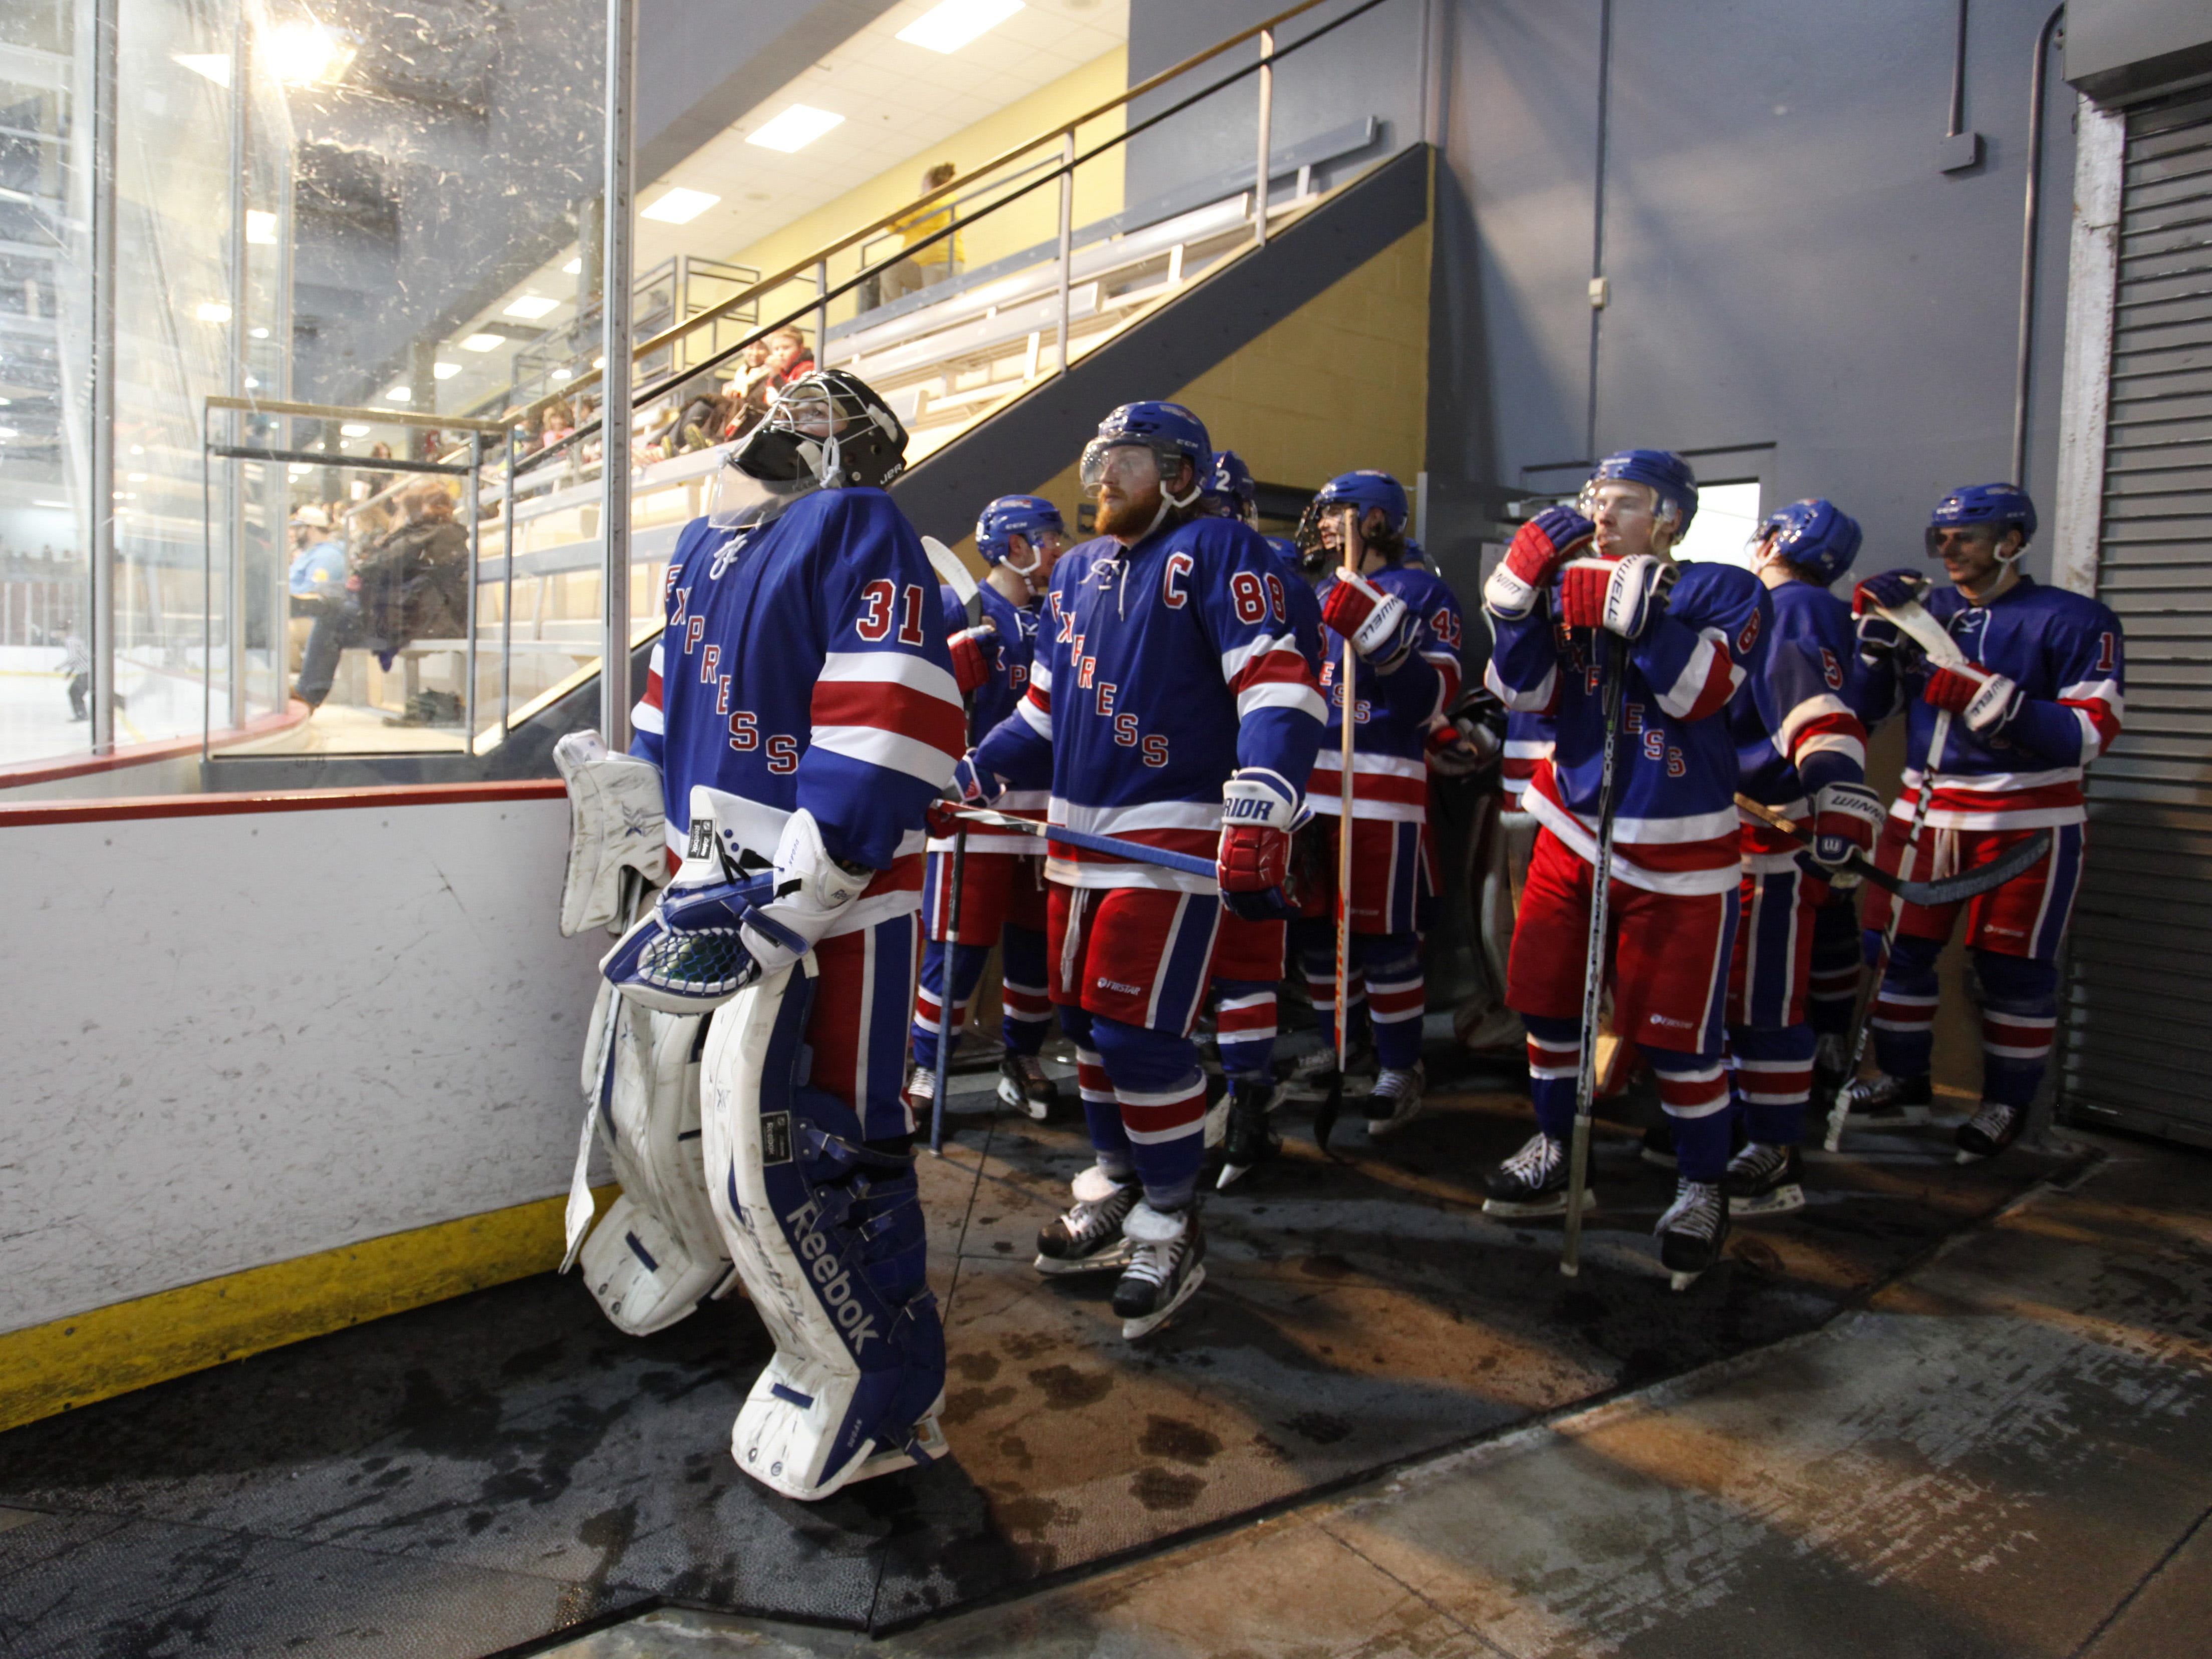 Springfield Express goalie Bobby Dugan prepares to lead the team onto the ice after for the second period during a game against the Wichita Jr. Thunder at the Mediacom Ice Park on Friday, Feb. 13, 2015.